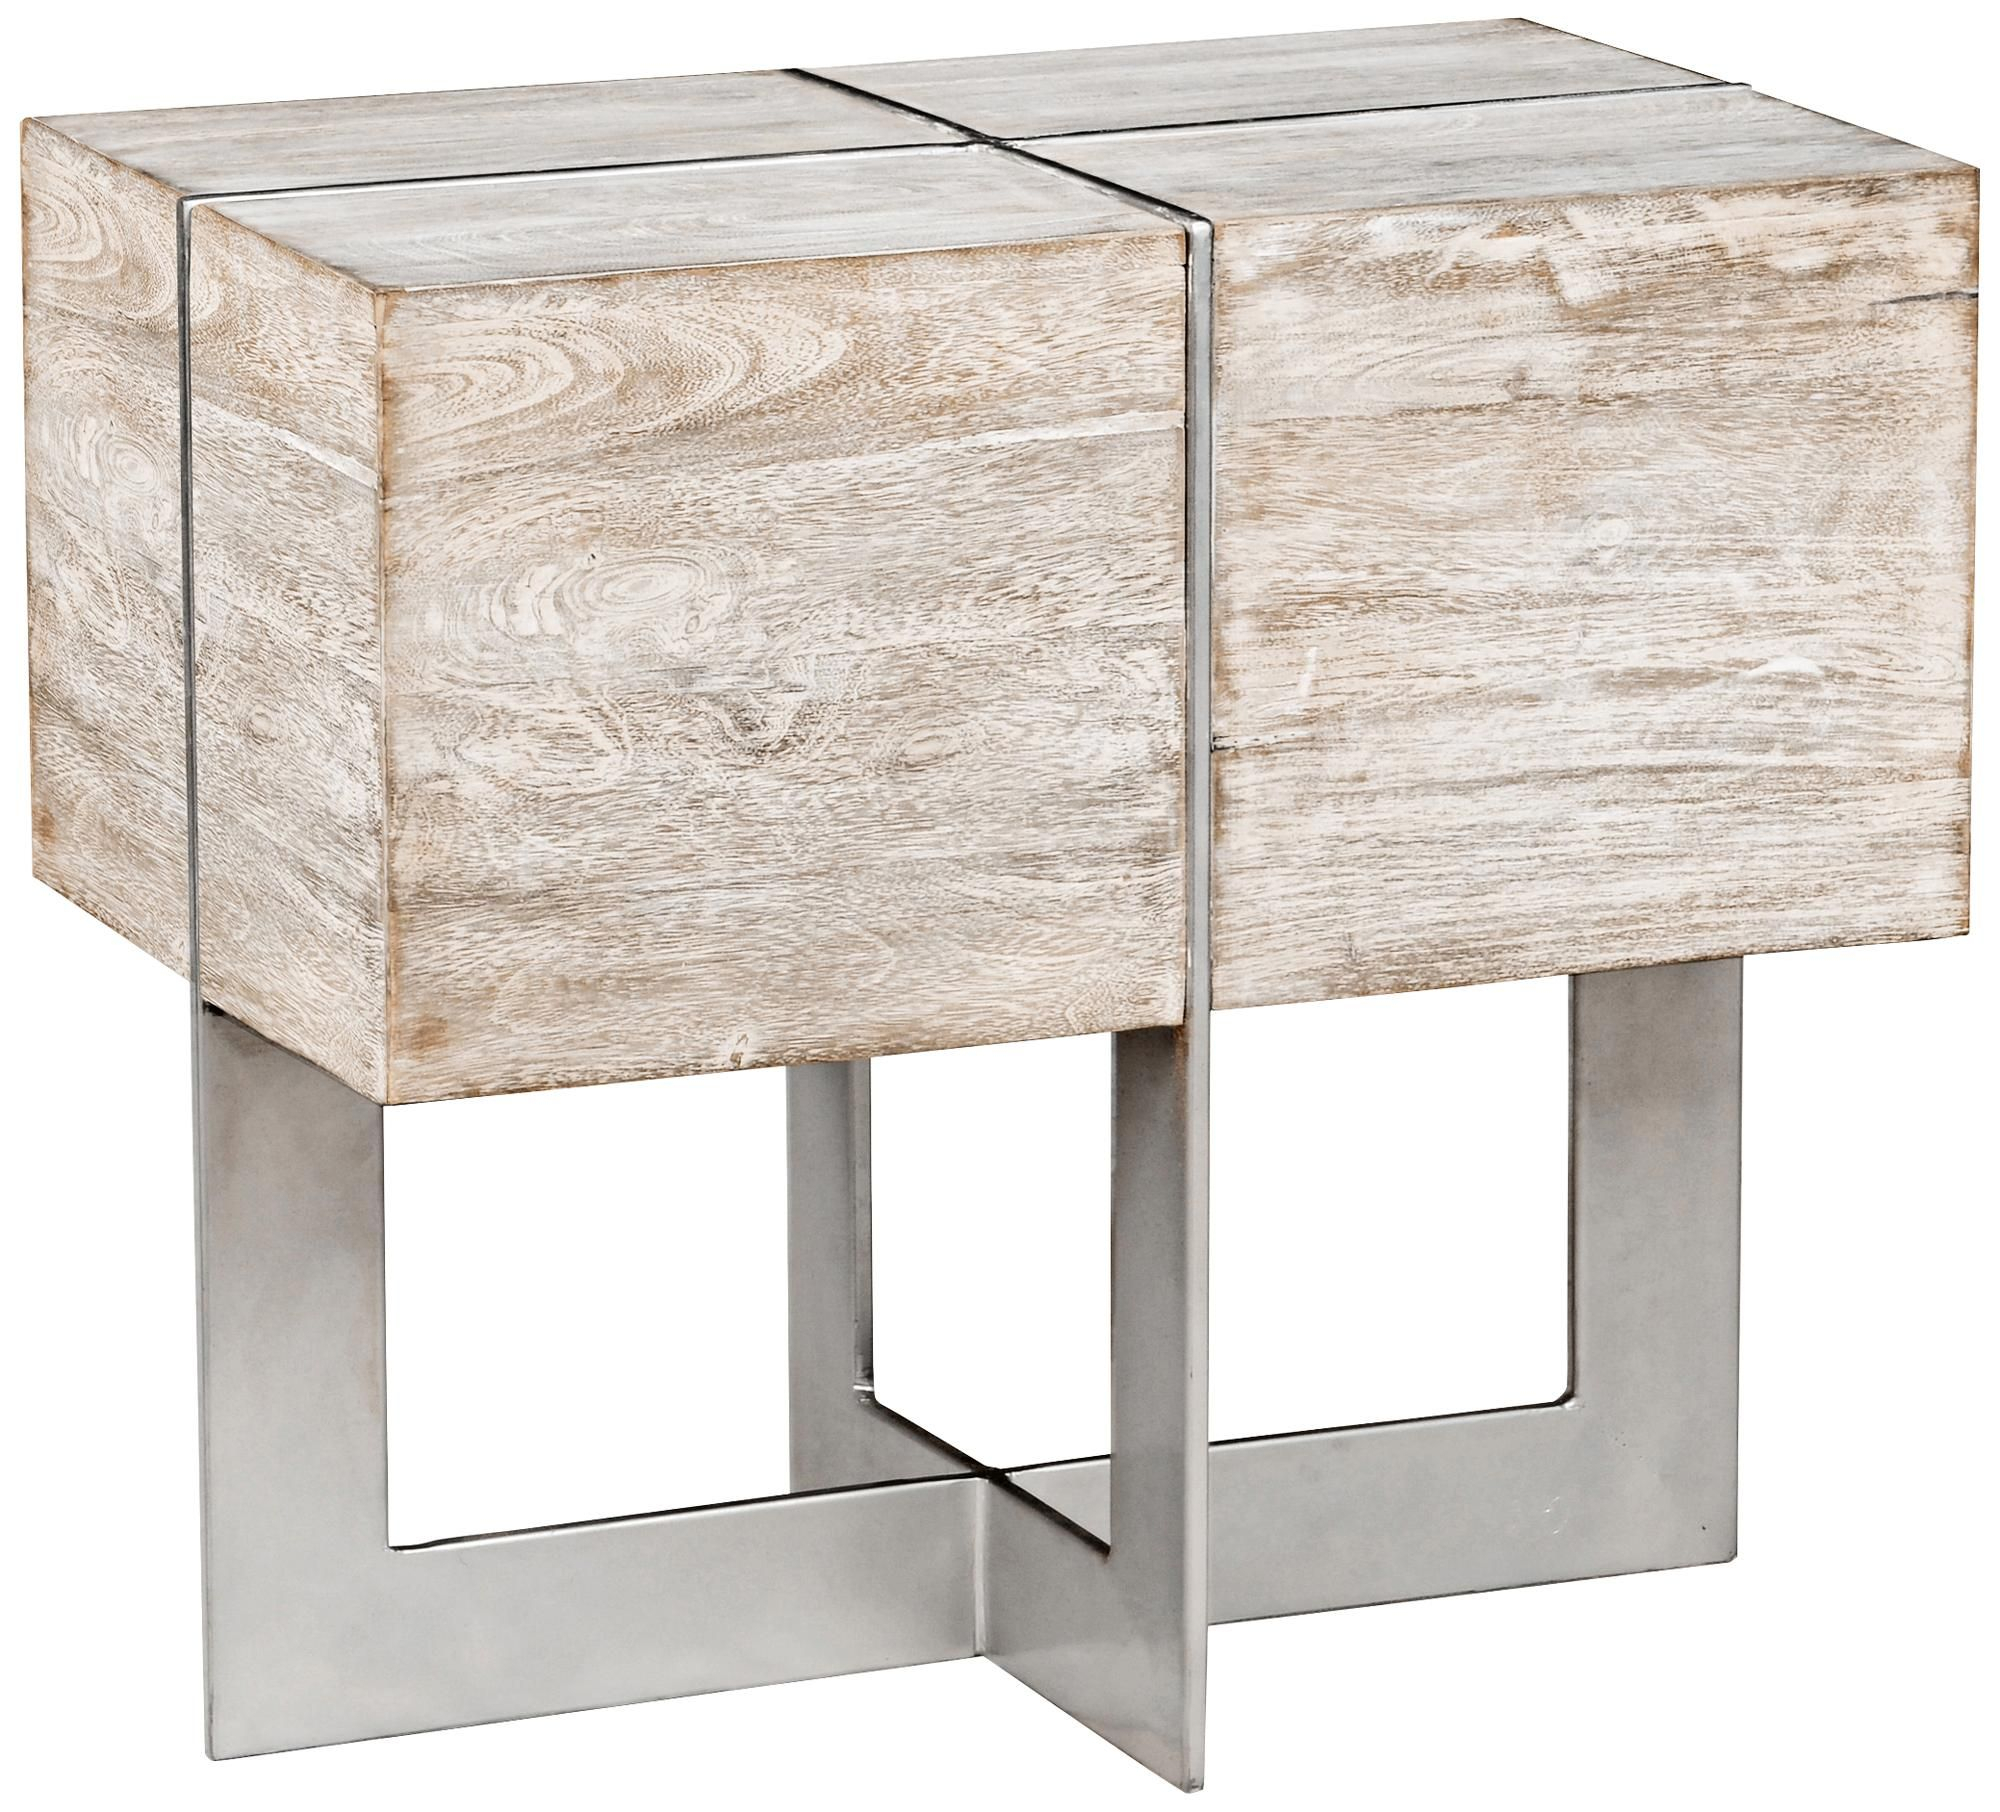 Desmond White Wash Solid Mango Wood Block End Table | Home Accents Throughout Parsons White Marble Top & Dark Steel Base 48X16 Console Tables (Photo 28 of 30)